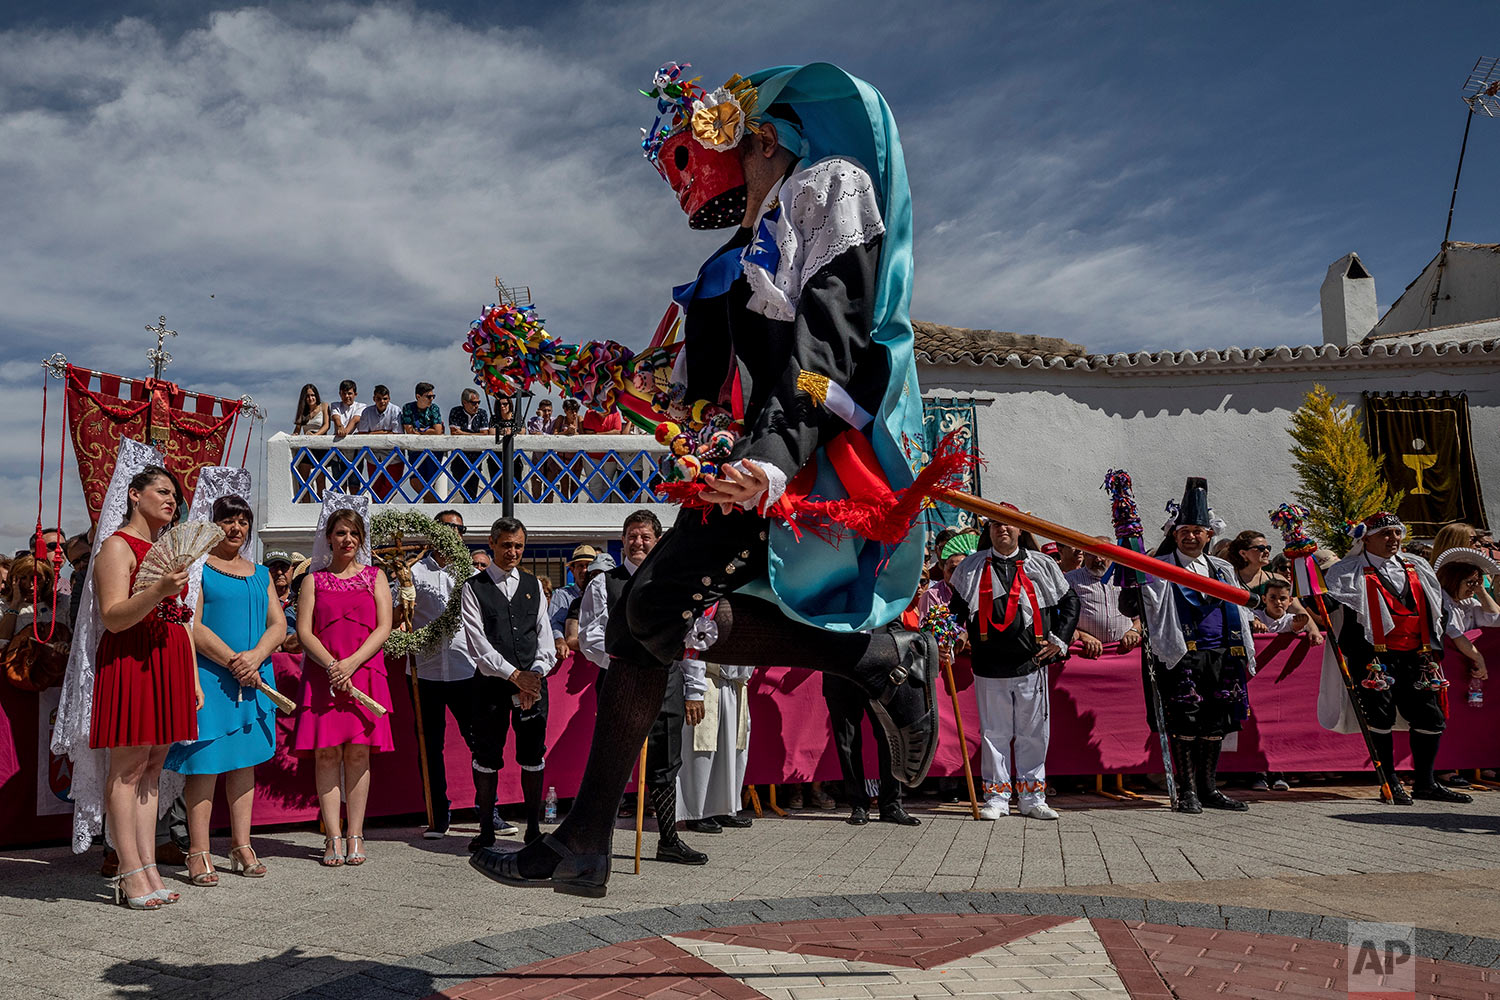 "In this Thursday, June 20, 2019 photo, a member of the ""Hermandad del santísimo sacramento pecados y danzantes"" brotherhood representing the sins jumps during a Corpus Christi procession in Camunas, central Spain. (AP Photo/Bernat Armangue)"